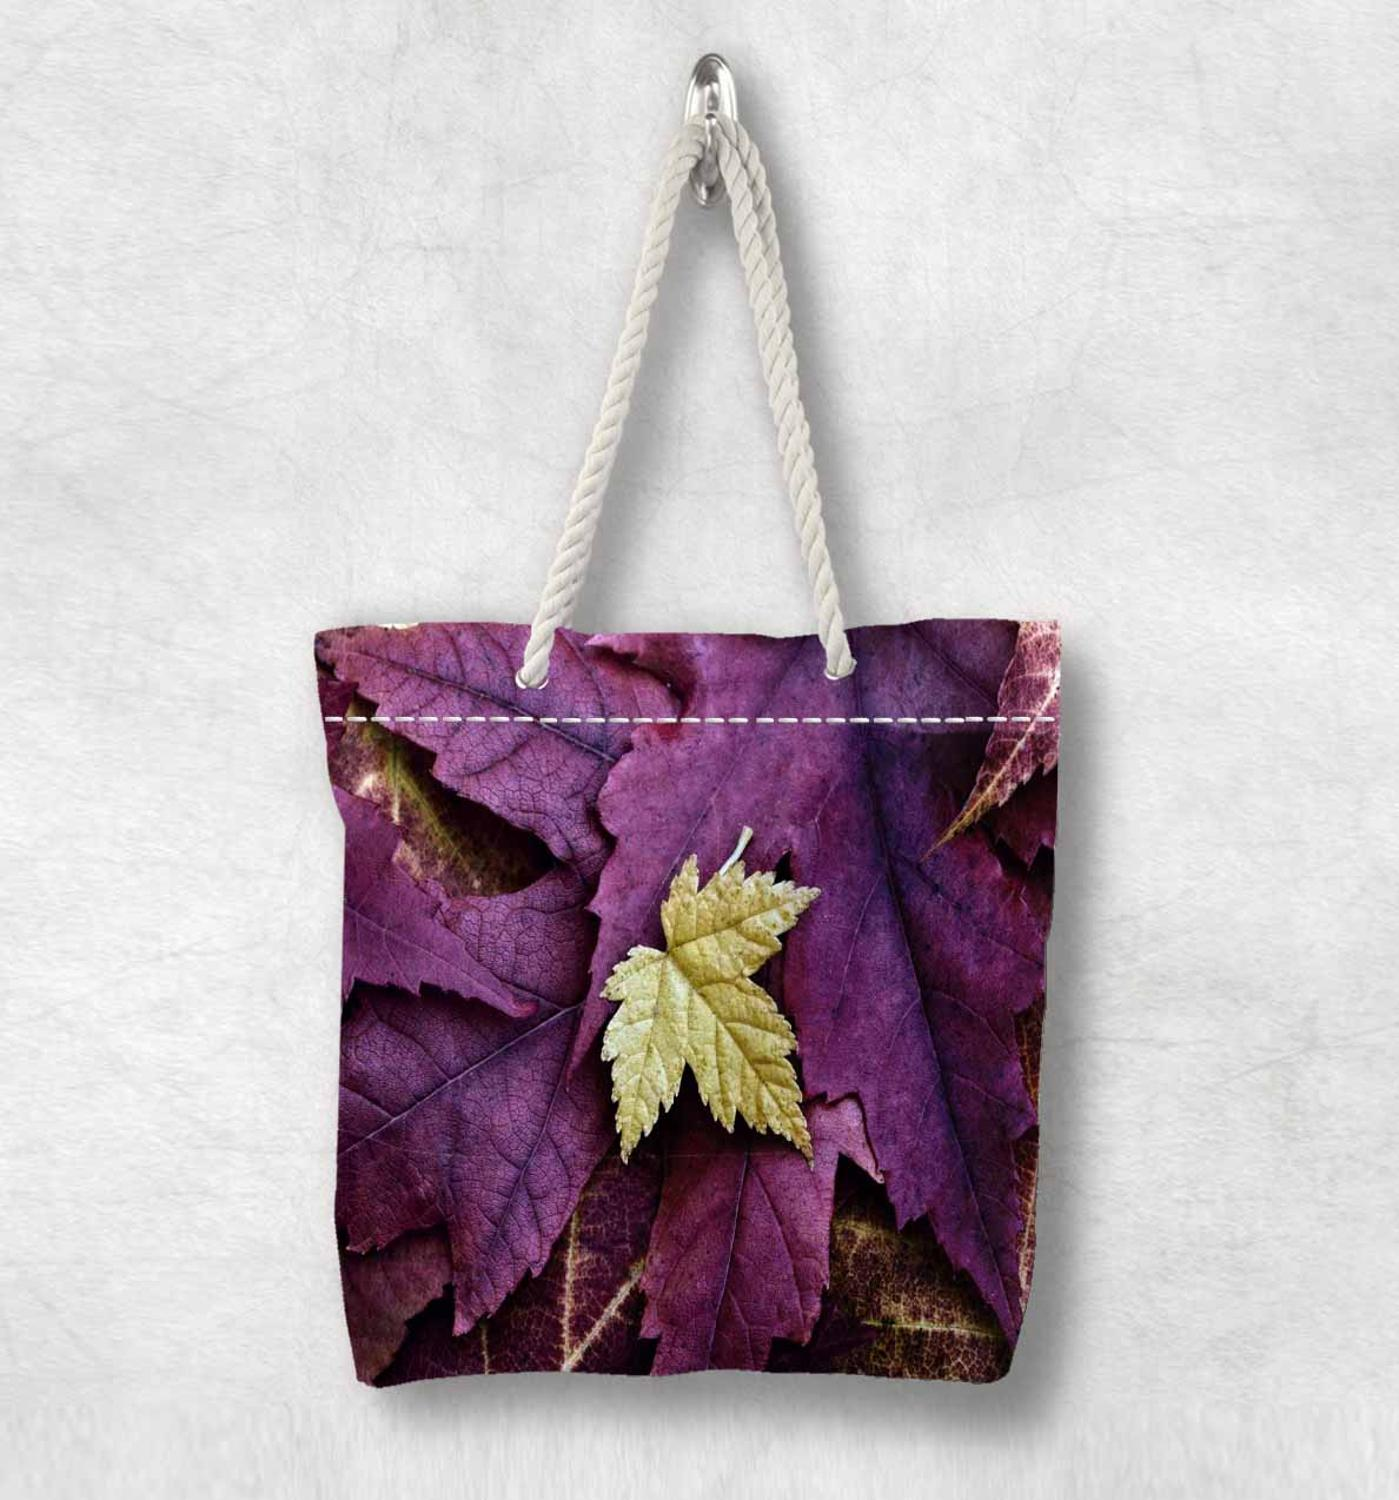 Else Purple Leaves On Yellow Leaf Floral New Fashion White Rope Handle Canvas Bag Cotton Canvas Zippered Tote Bag Shoulder Bag